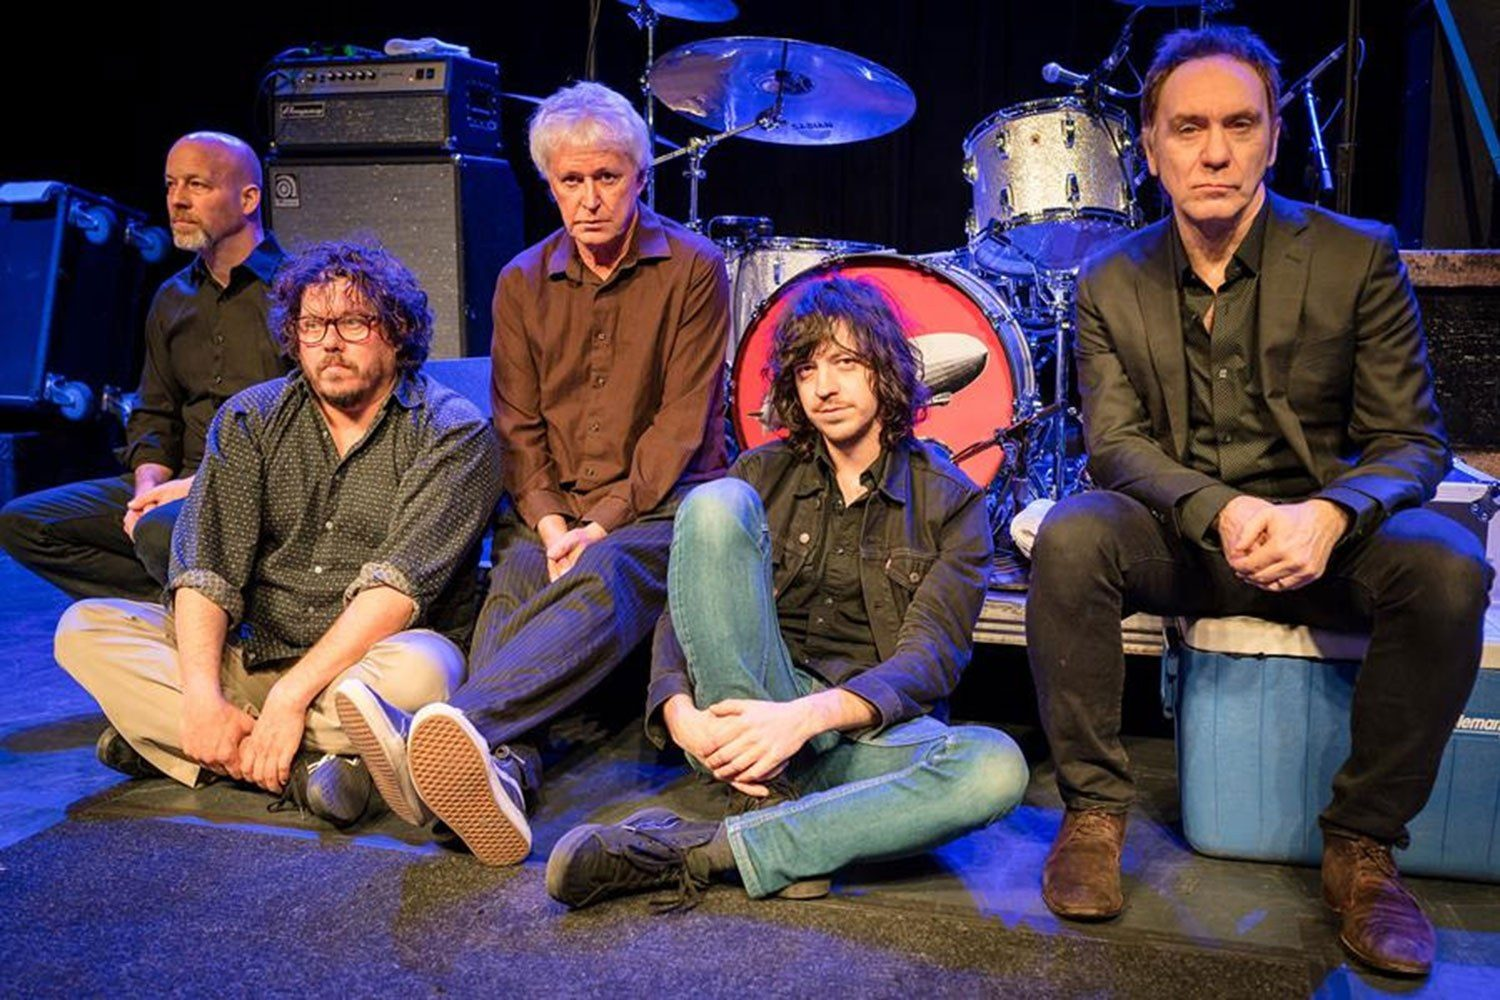 Guided By Voices have announced their first UK show in over 15 years